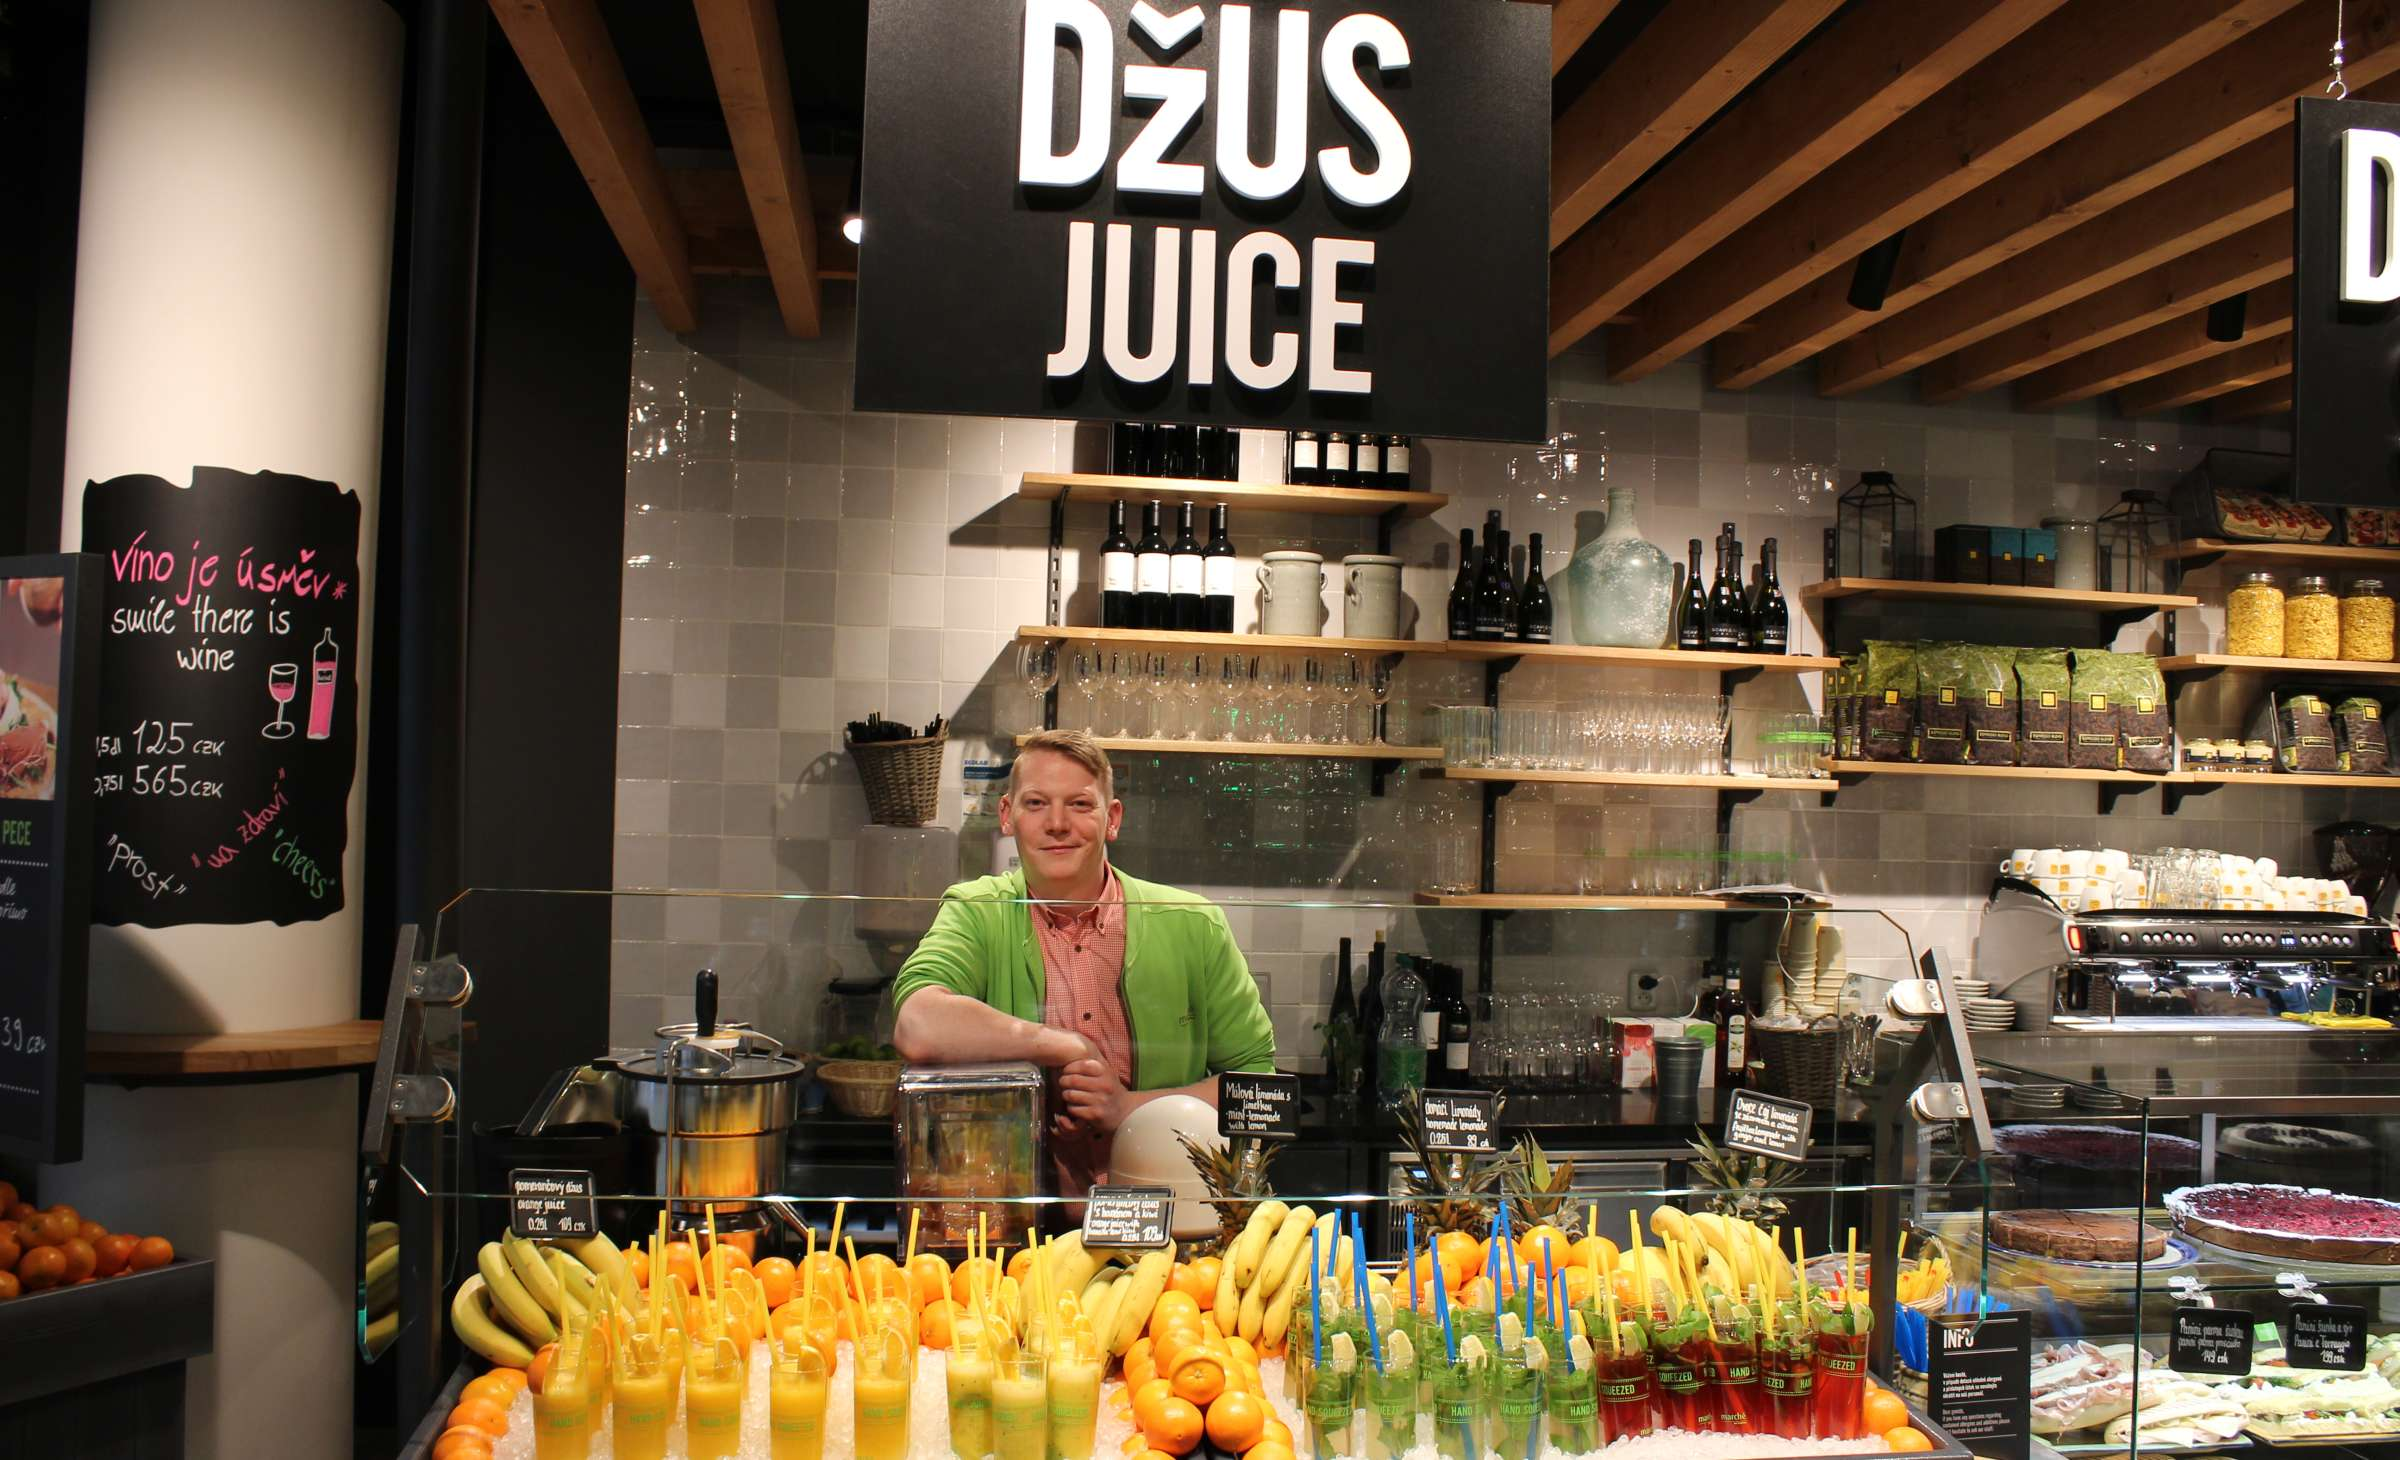 Marché Mövenpick Prague Airport Juice Bar